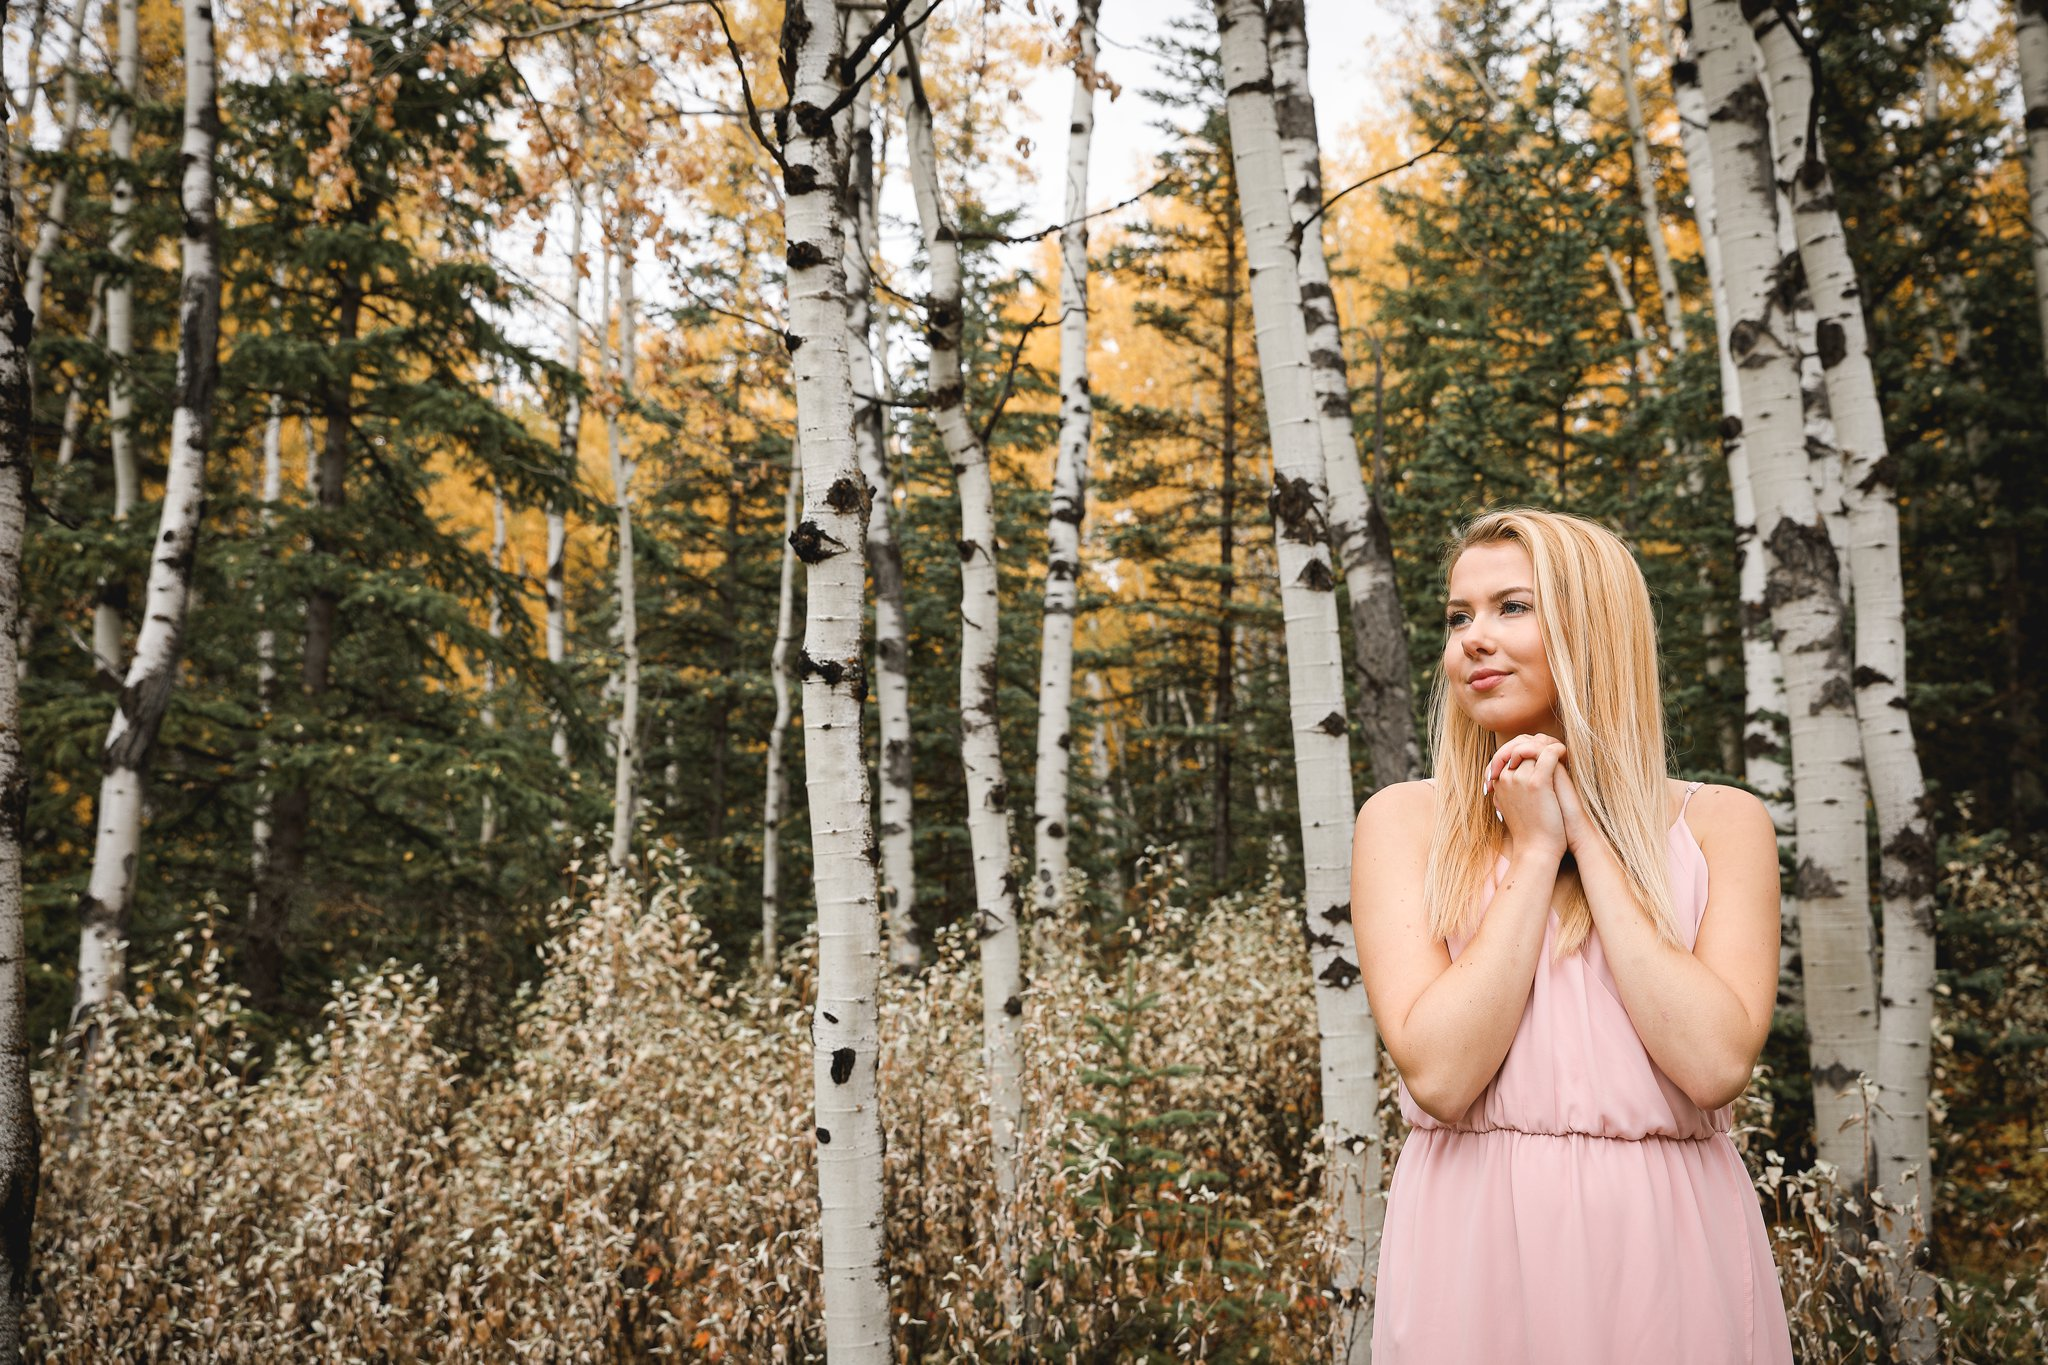 AshleyDaphnePhotography Calgary Photographer Wedding Family Senior Portraits Rocky Mountains Sheep River Falls Autumn Fall_0041.jpg